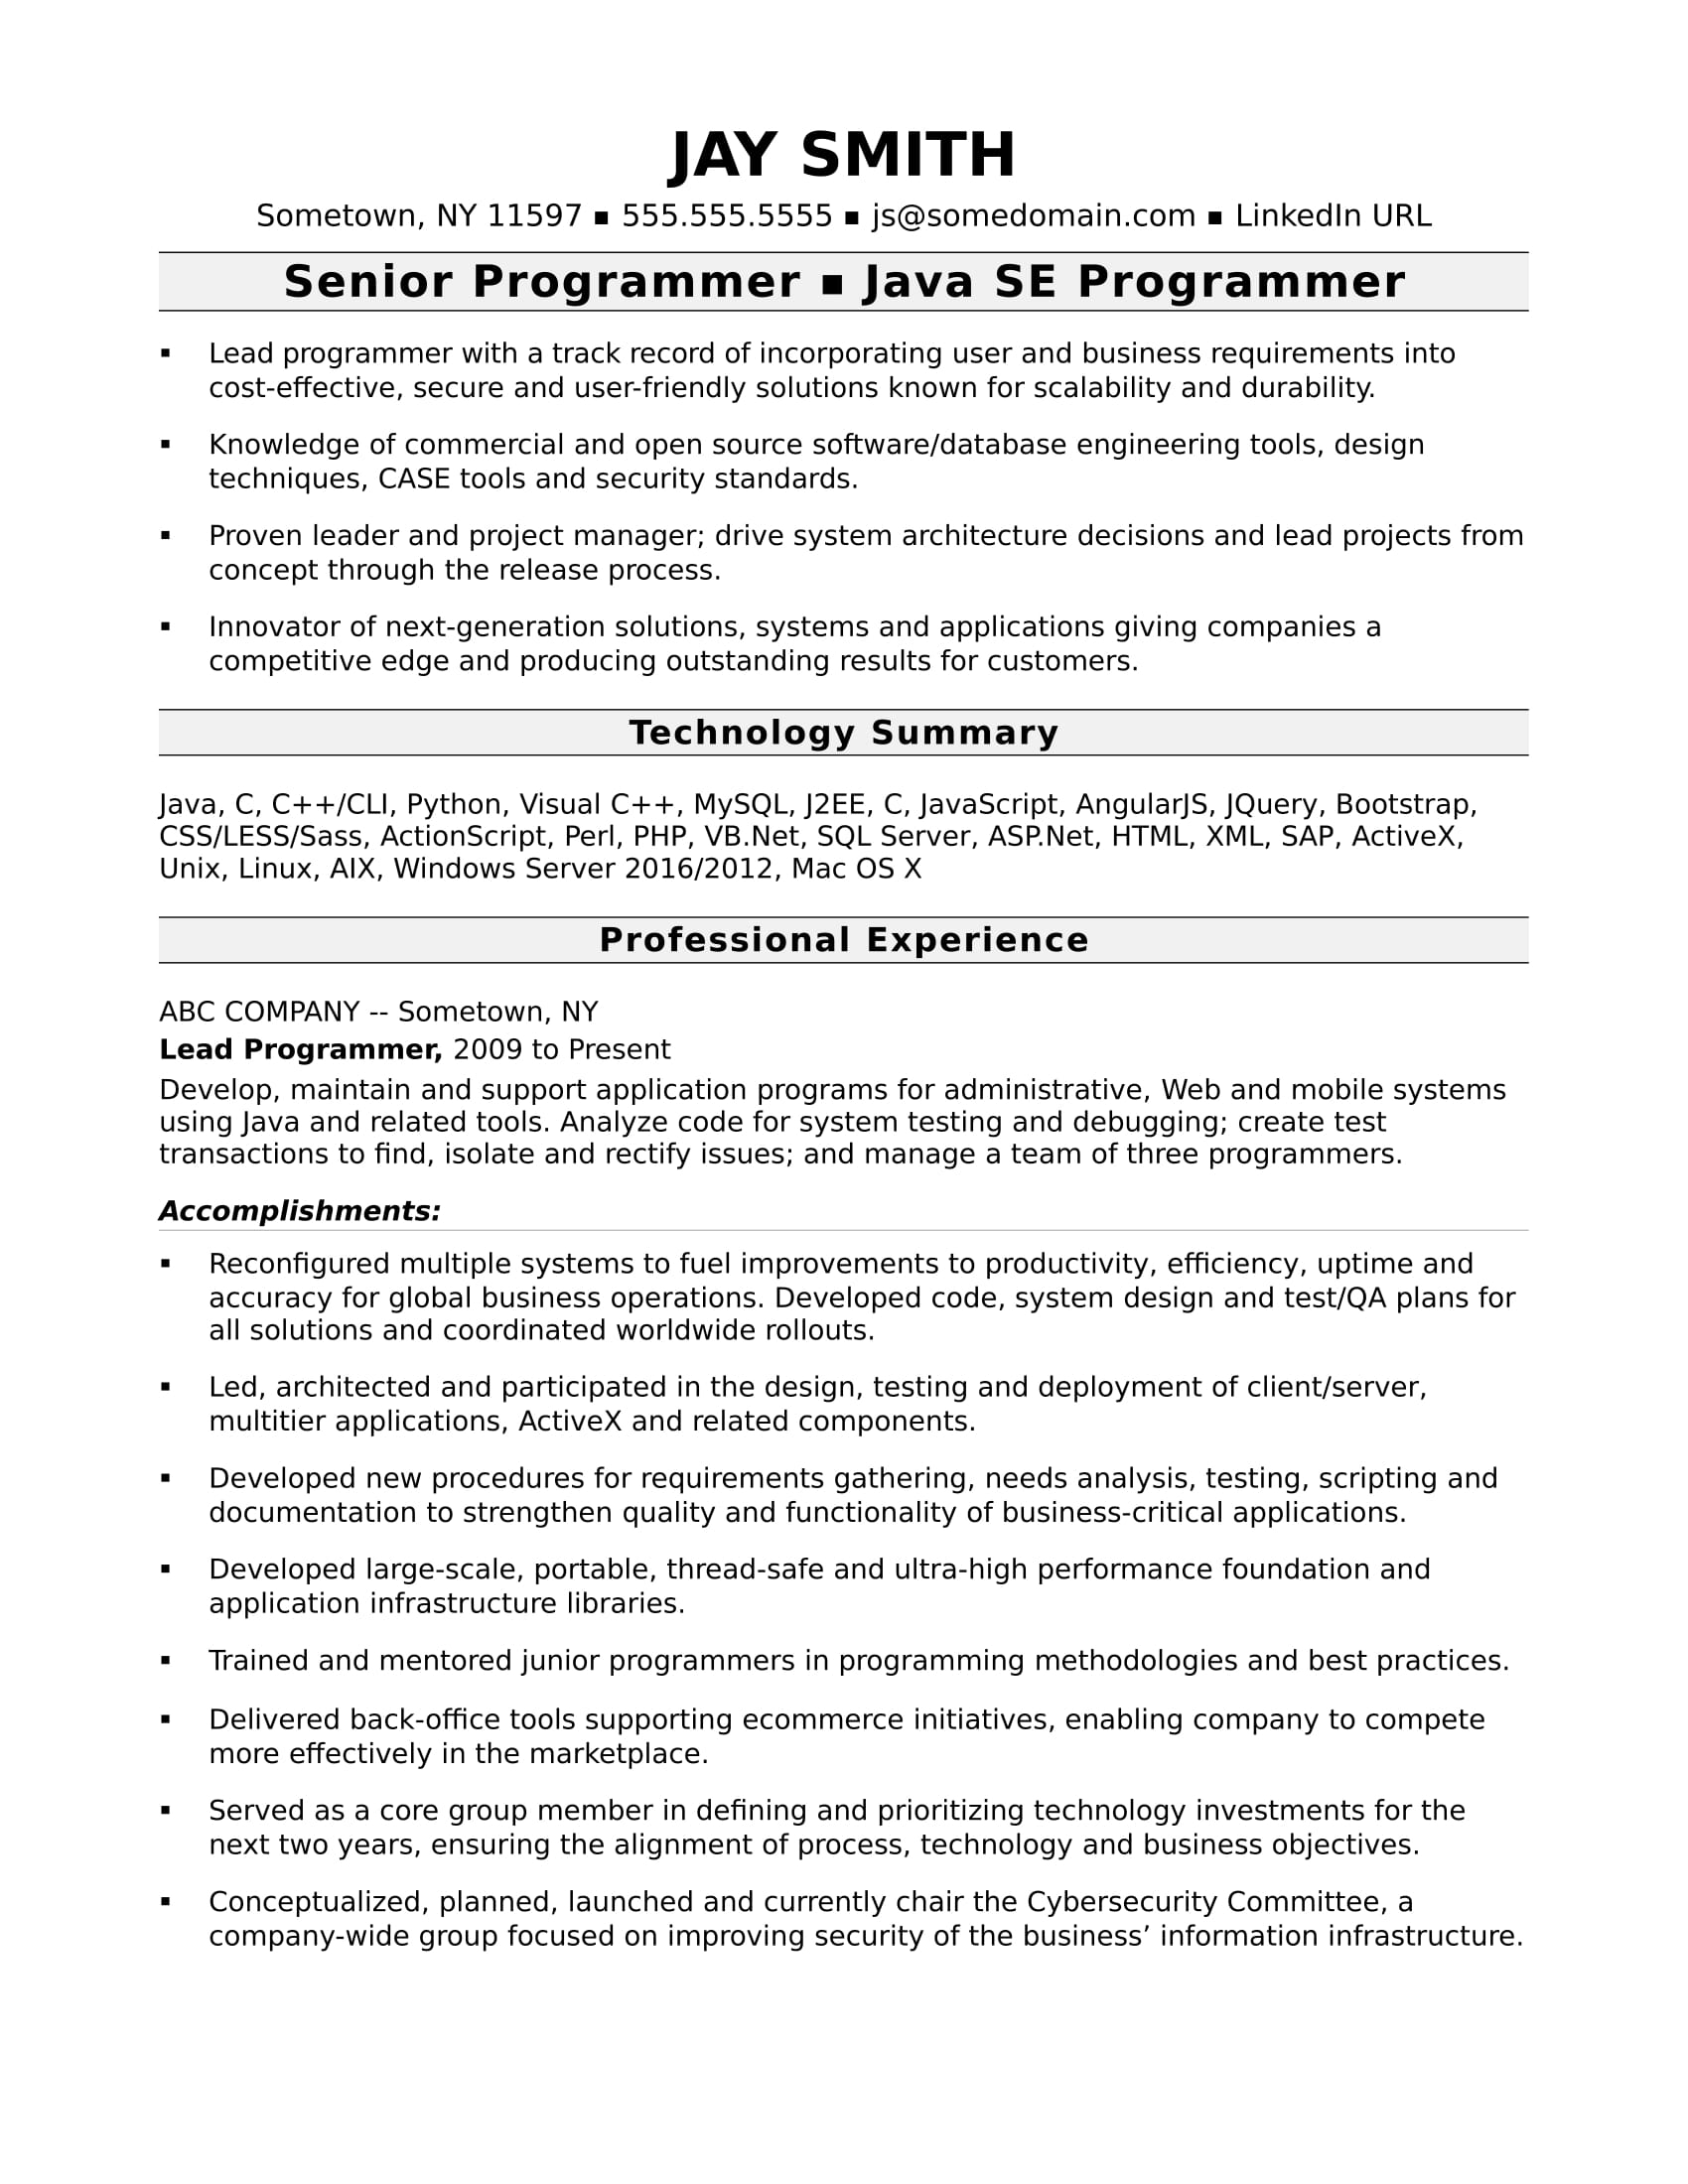 Charming Sample Resume For An Experienced Computer Programmer For Resume For